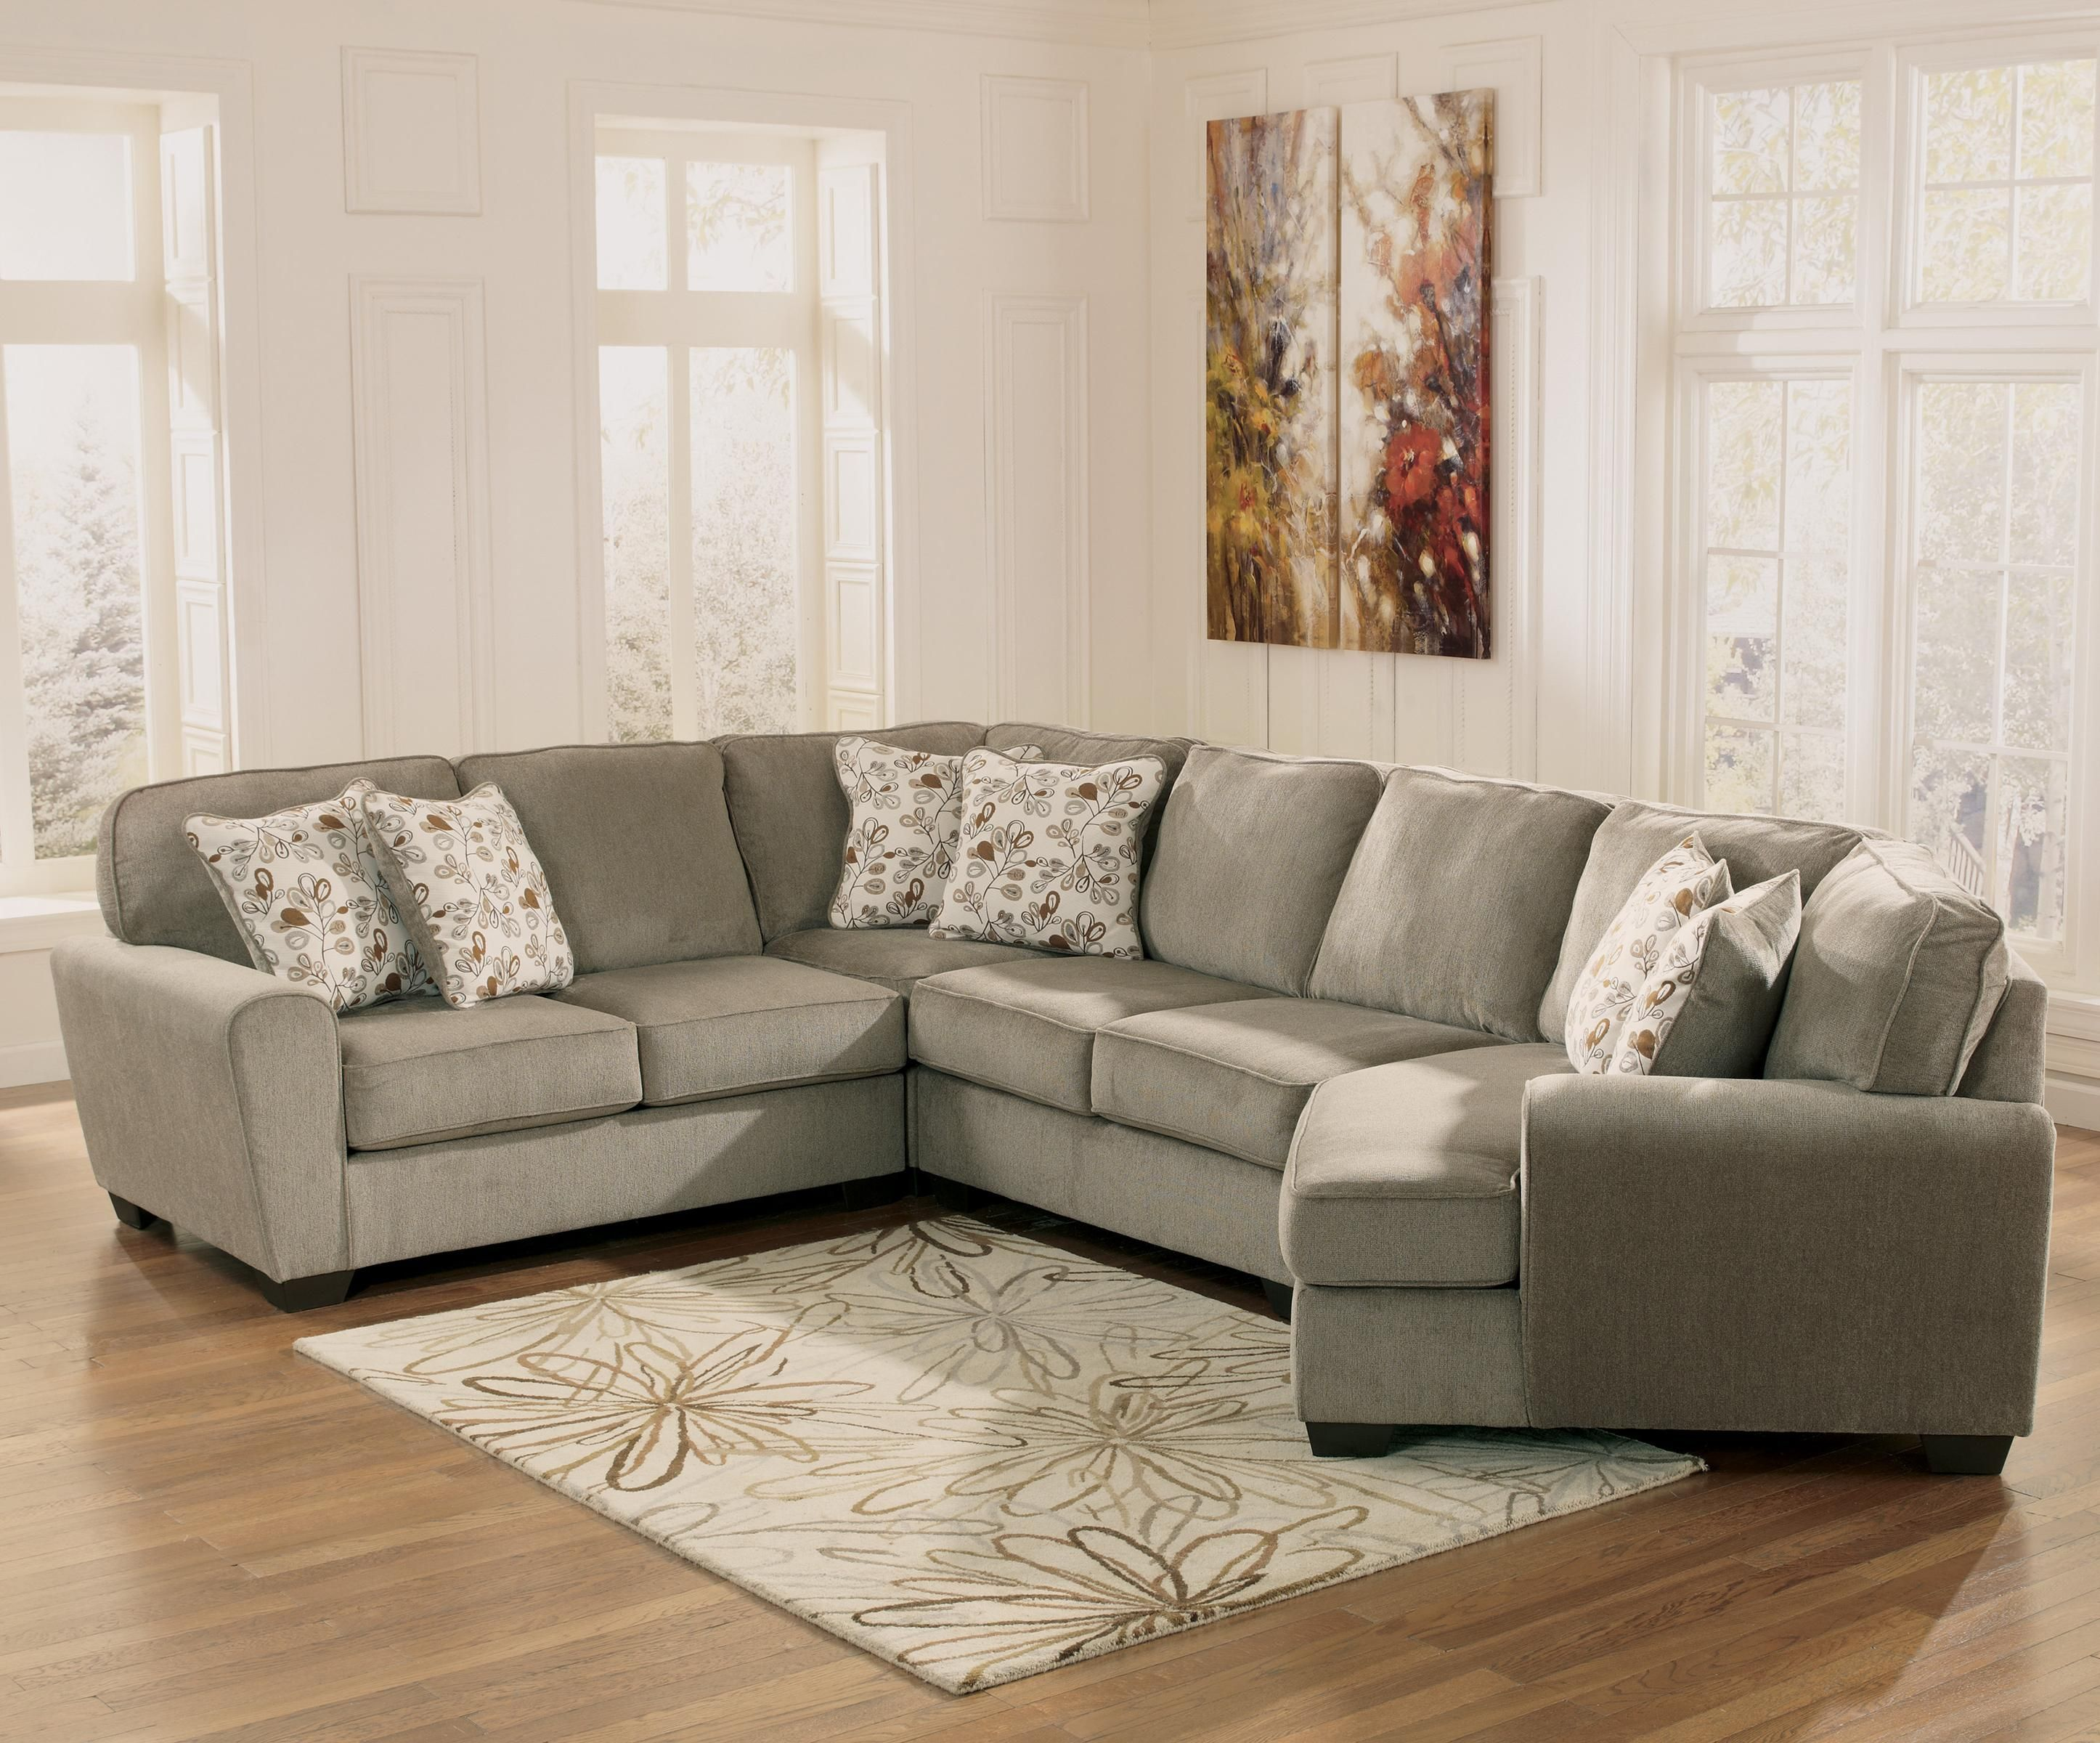 Best Patola Park Patina 4 Piece Small Sectional With Right 400 x 300